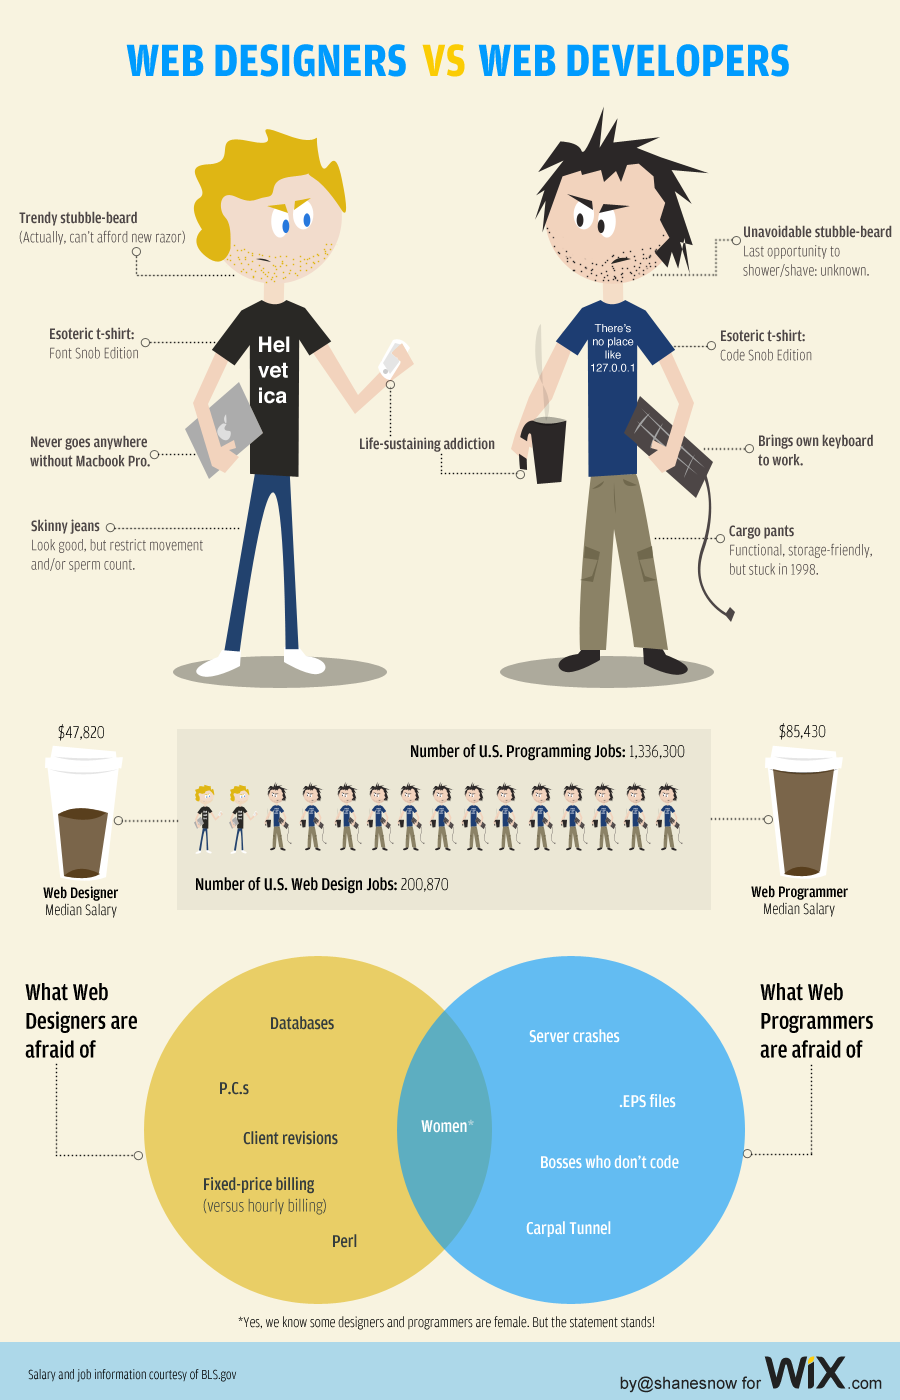 web designers vs we developers Web Designers vs. Web Developers: The Face Off